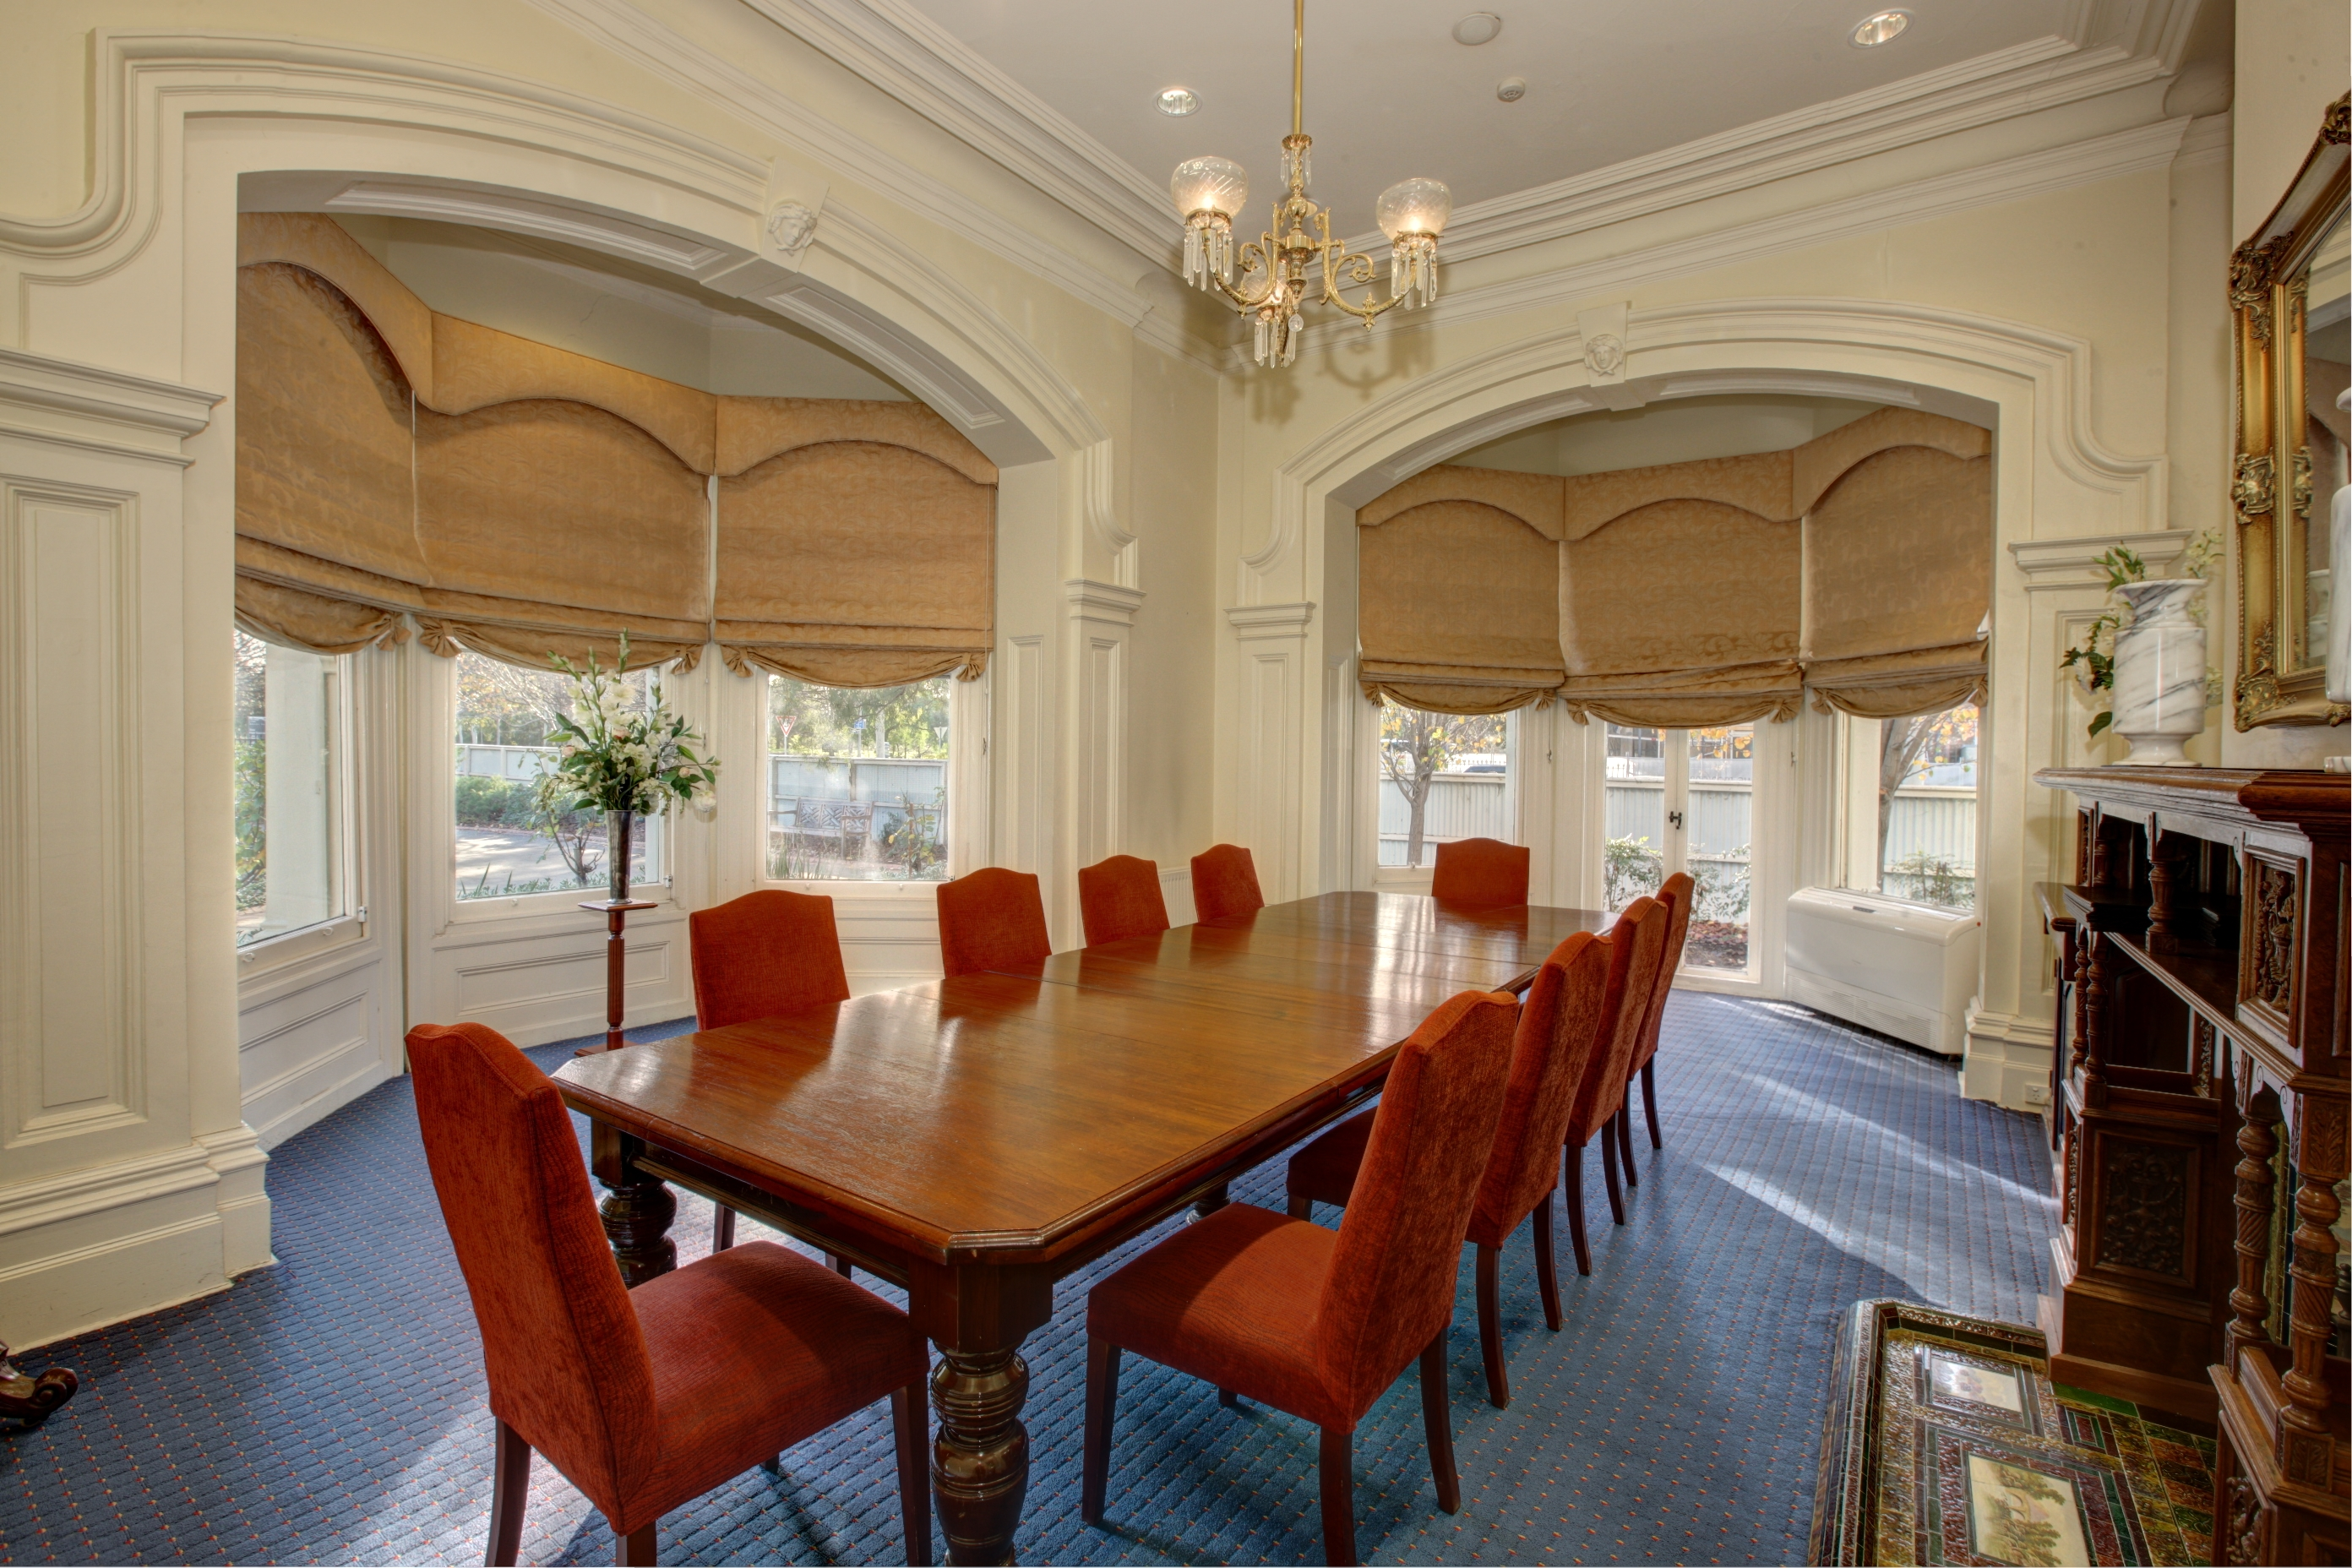 Waterford Function Room Image - h